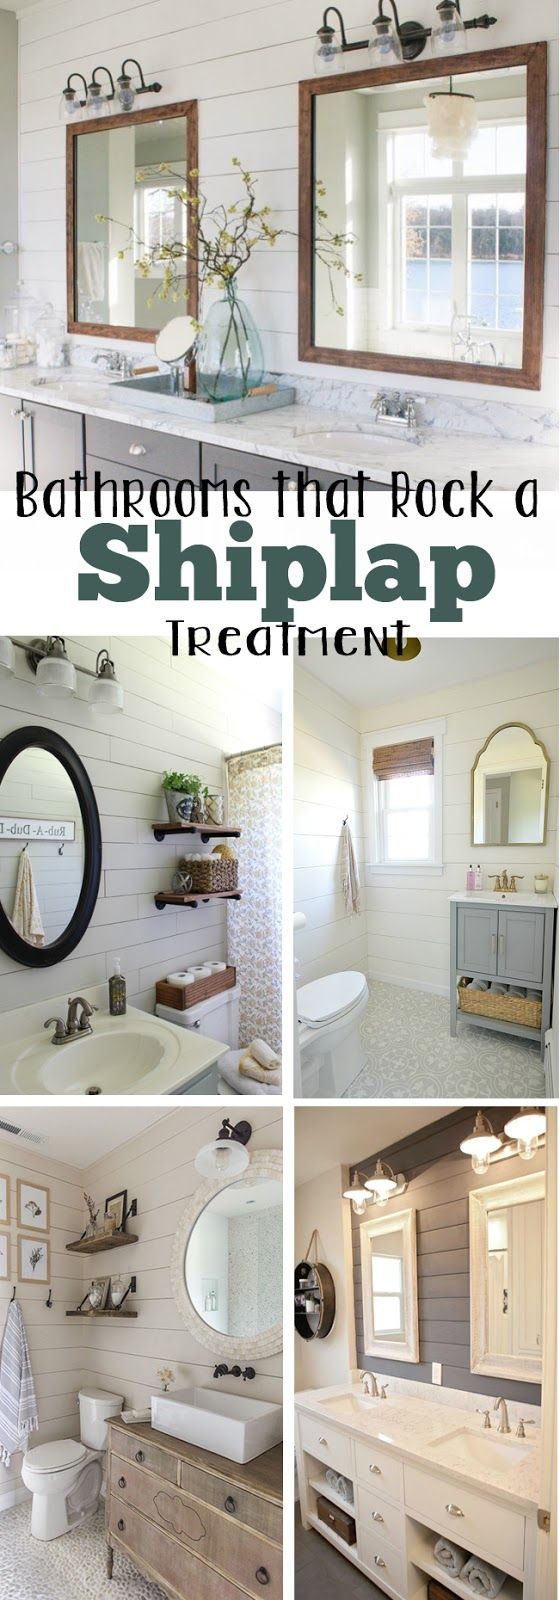 I love shiplap!! Damn you Joanna Gaines! Only wish it was more common in the UK. Gorgeous farmhouse style bathrooms